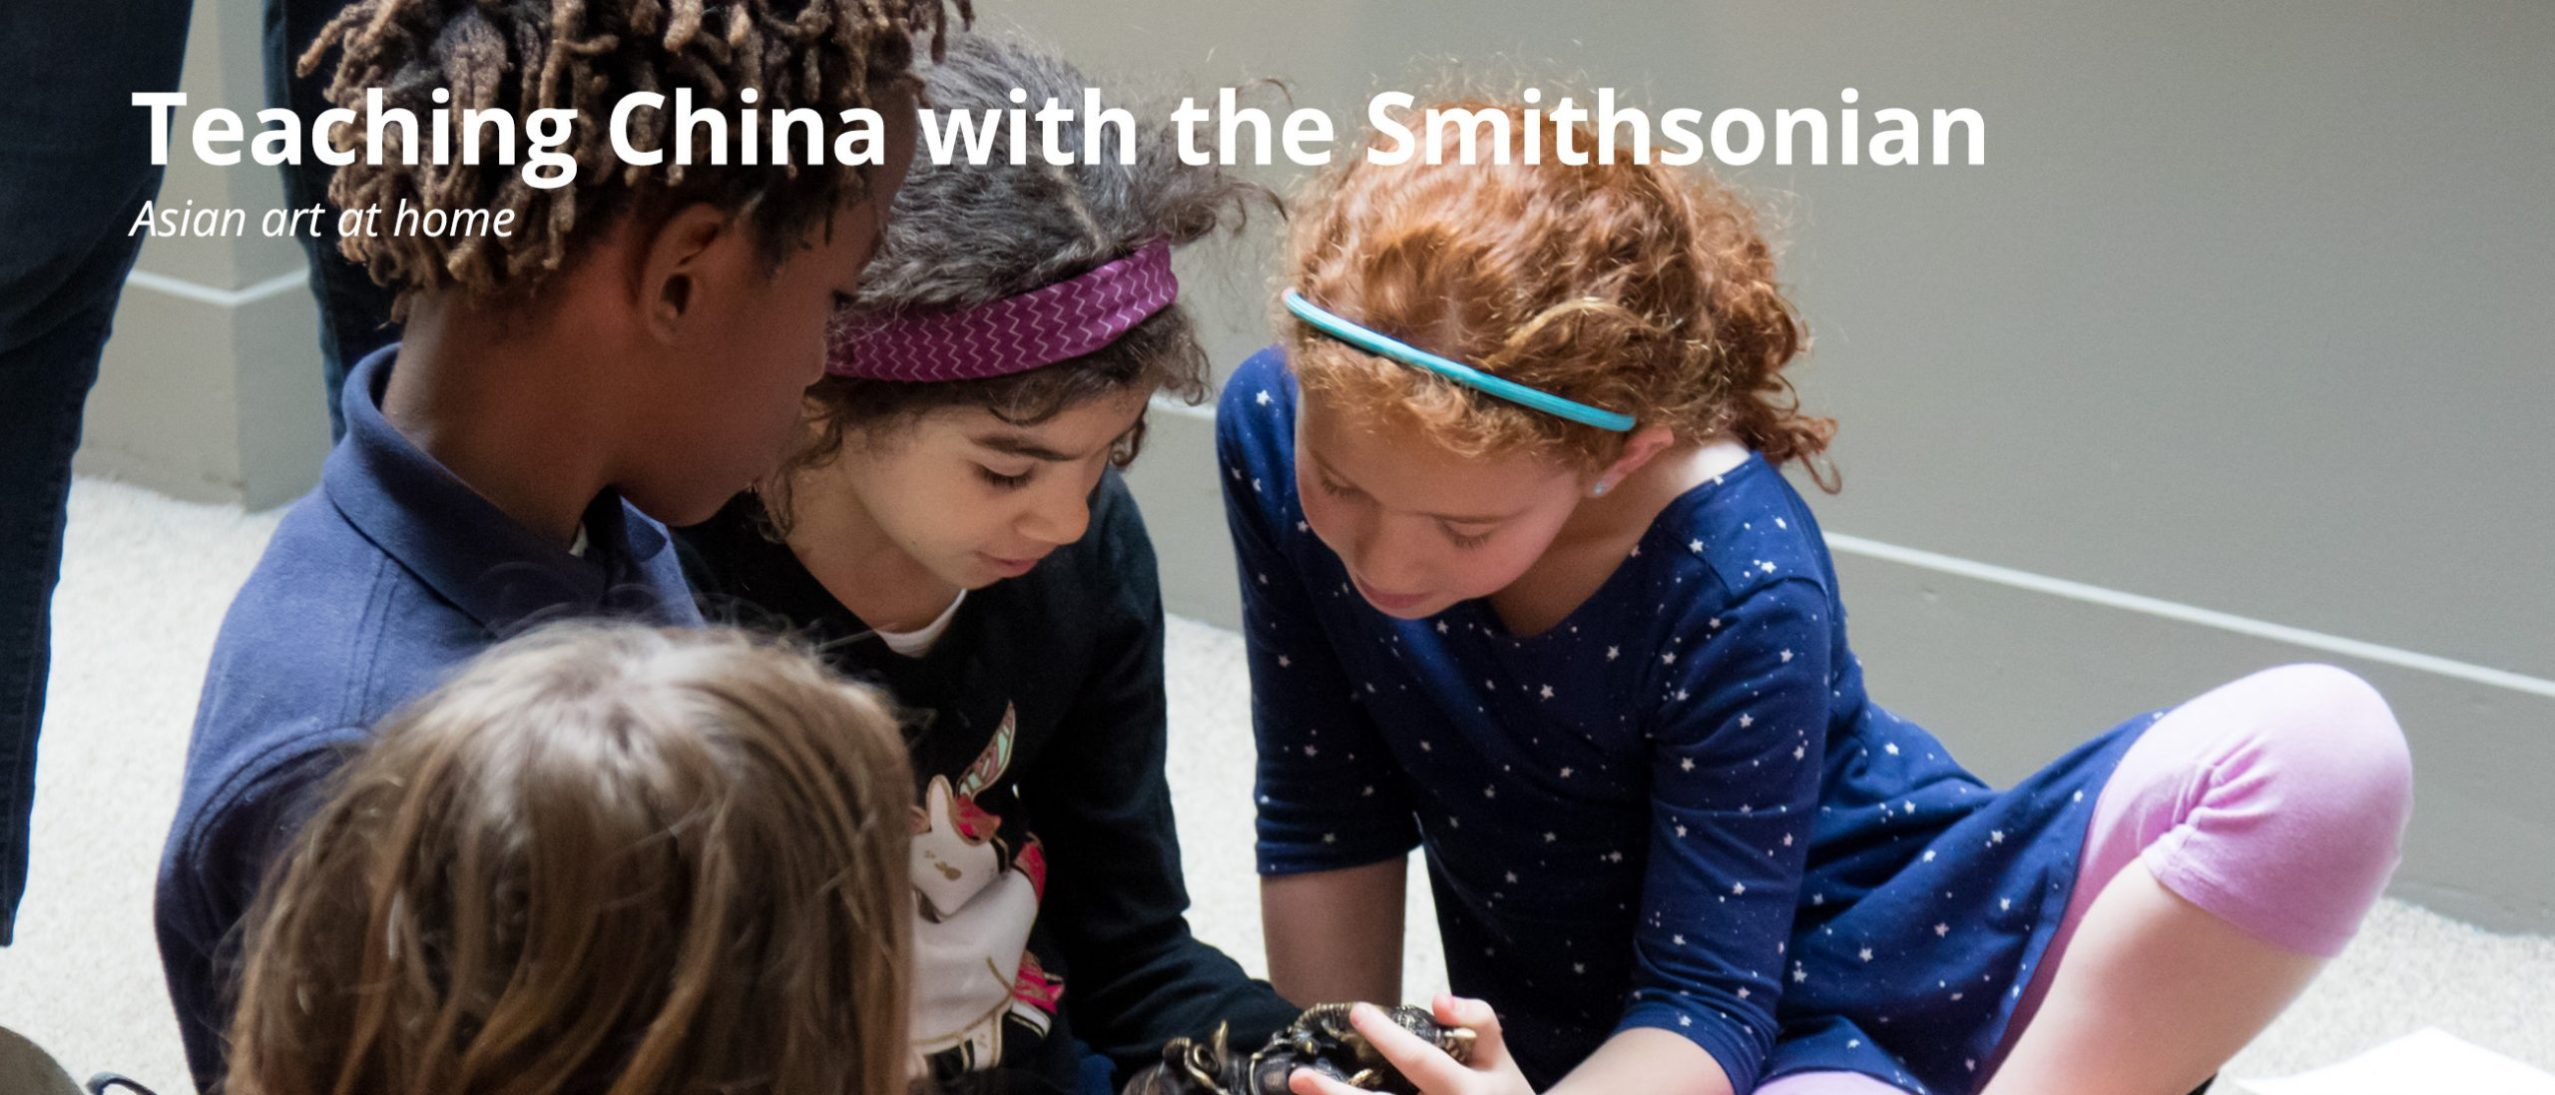 Teaching China with the Smithsonian - new resource. Image shows four children looking at a small bronze object.